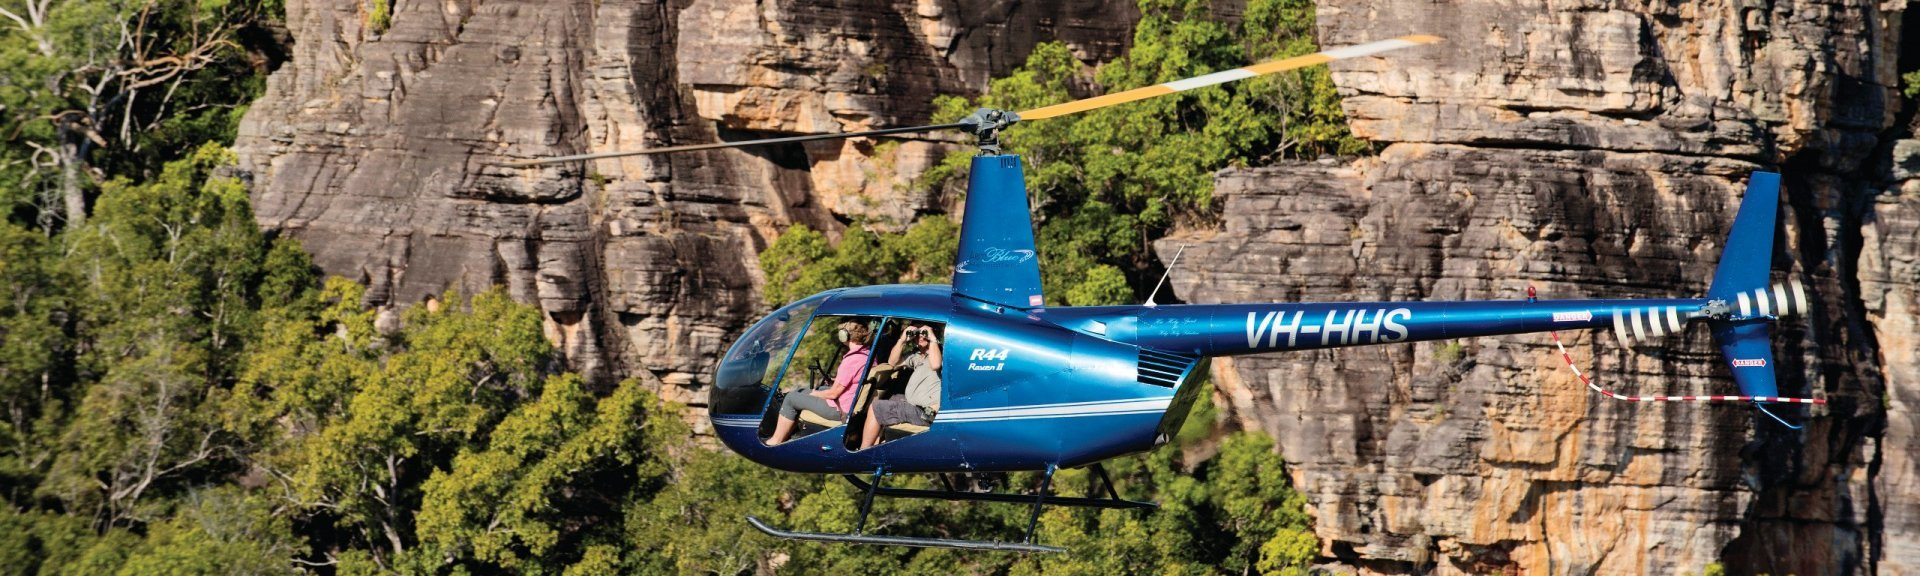 Scenic flight over Kakadu. Photo by Tourism NT.